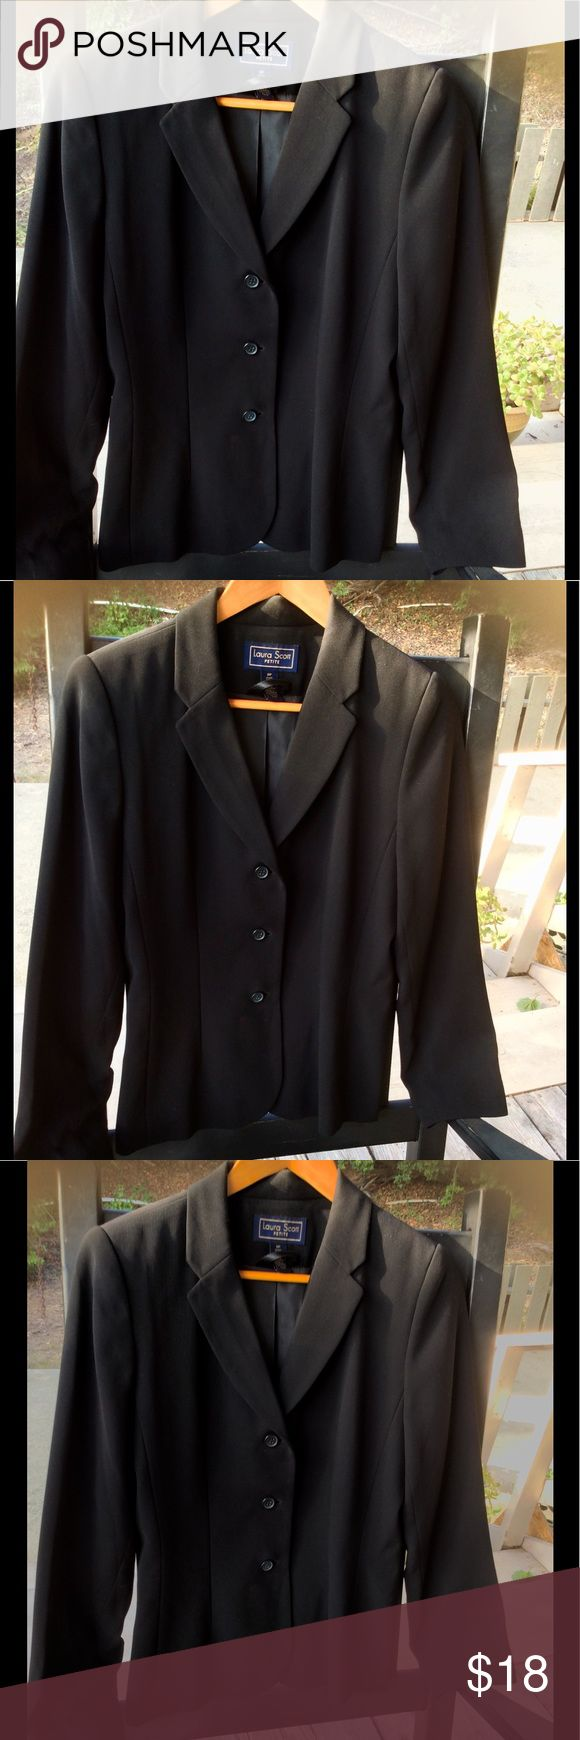 Lauren Scott Retro 40's Style Fitted Black Jacket Lauren Scott Petite Retro 40's Style Fitted Black Jacket size 8P , Slight padded Shoulder for that slim lean look. Constructed. A wardrobe must have. Great Condition Laura Scott Jackets & Coats Blazers